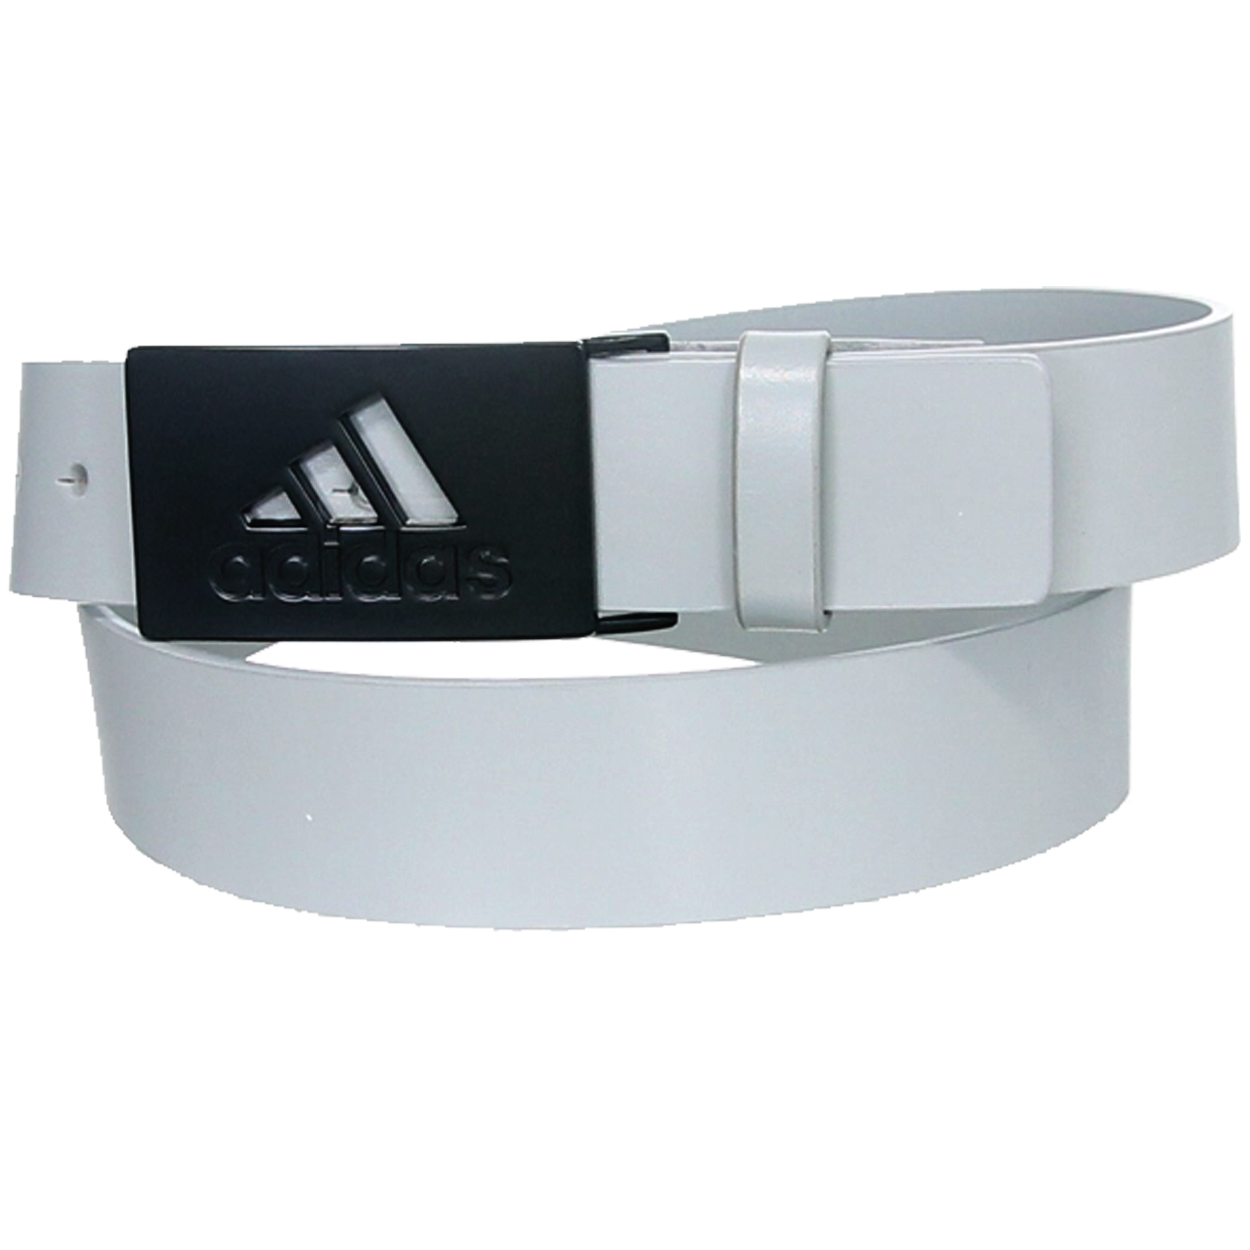 This adidas Smooth Leather Belt gives you a touch of Euro style with a 3-Stripe Cutout buckle. Compliment your golf outfit with a stylish new belt from adidas Golf! Made of 100% full grain leather. Smooth belt strap with single loop. Adidas 3-Stripe Cutout buckle. Single prong fastener. Wear the sam